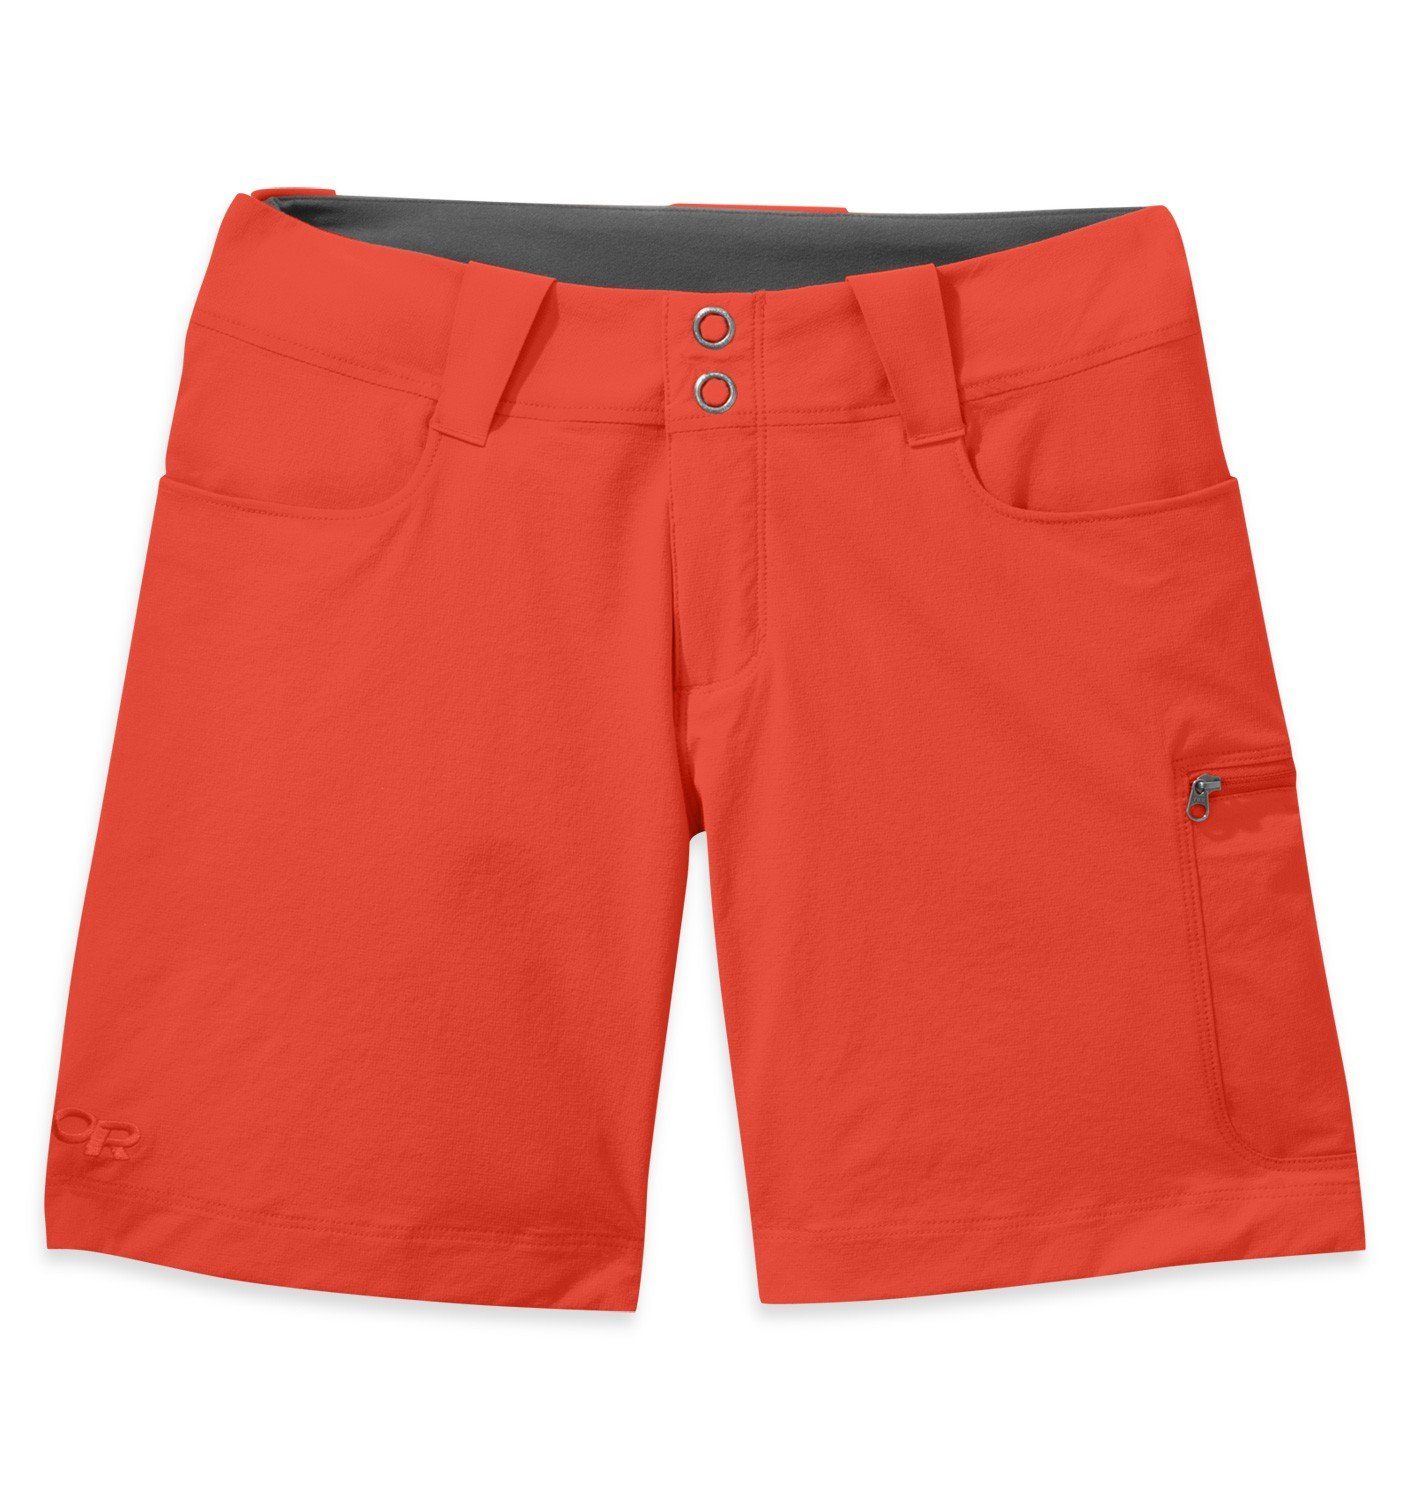 Outdoor Research Women's Ferrosi Summit 7'' Shorts, Paprika, 8